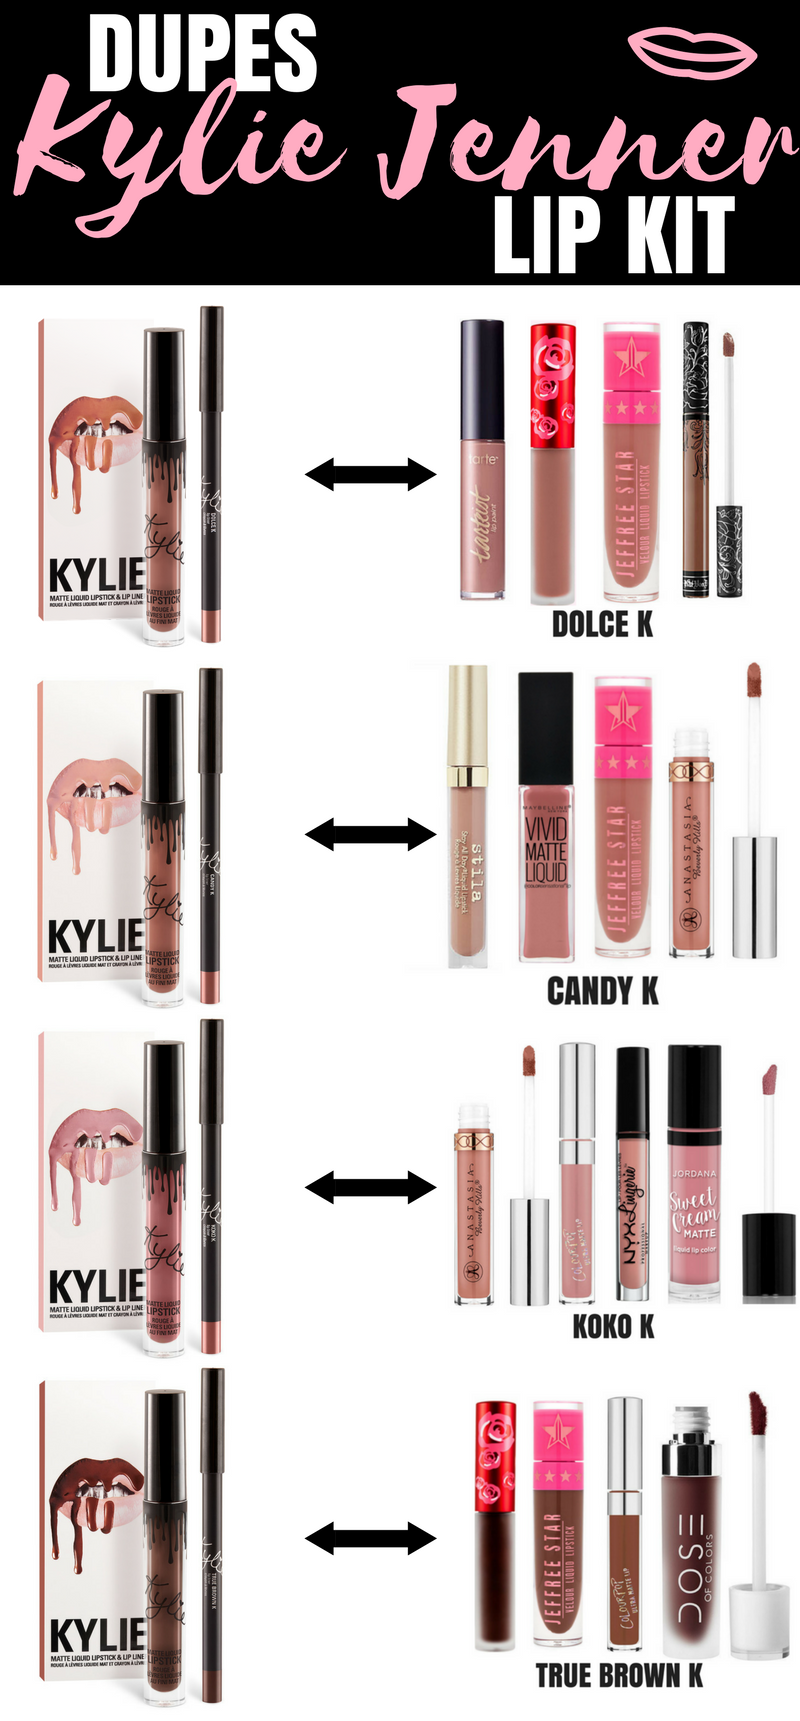 Kylie Jenner Lip Kit Dupes DOLCE K, KOKO K, CANDY K, TRUE